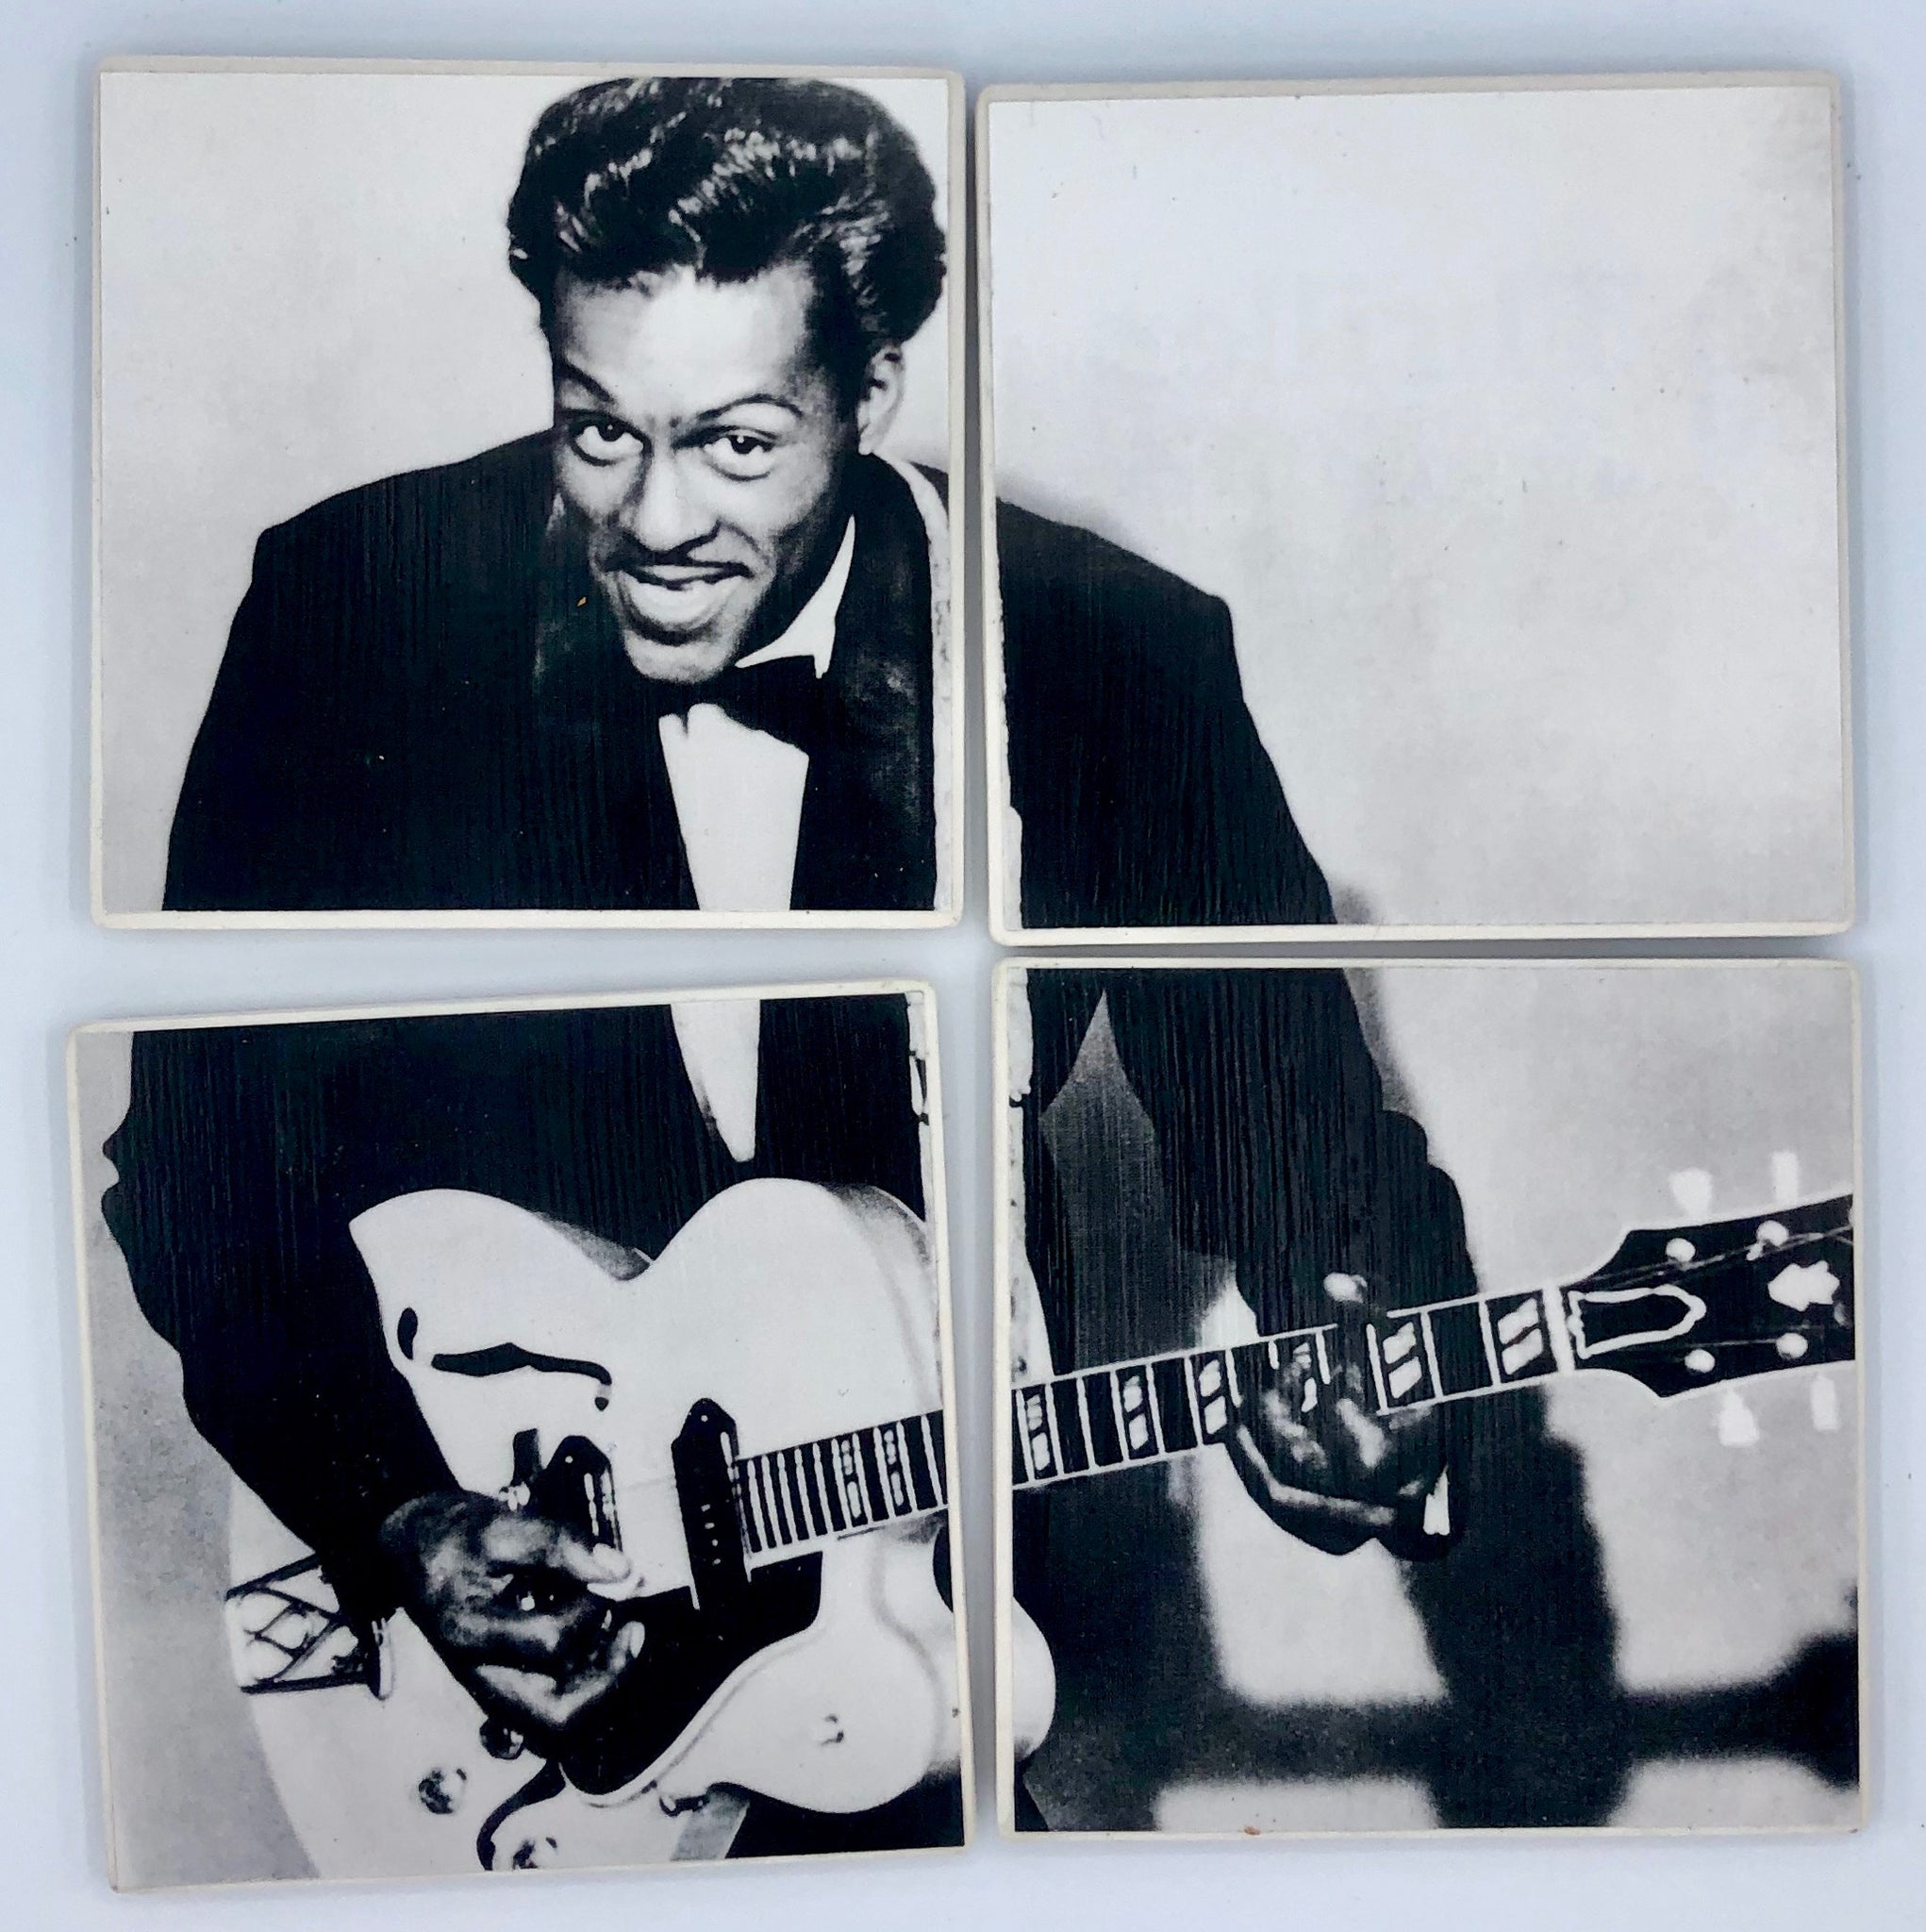 CHUCK BERRY - father of rock 'n roll